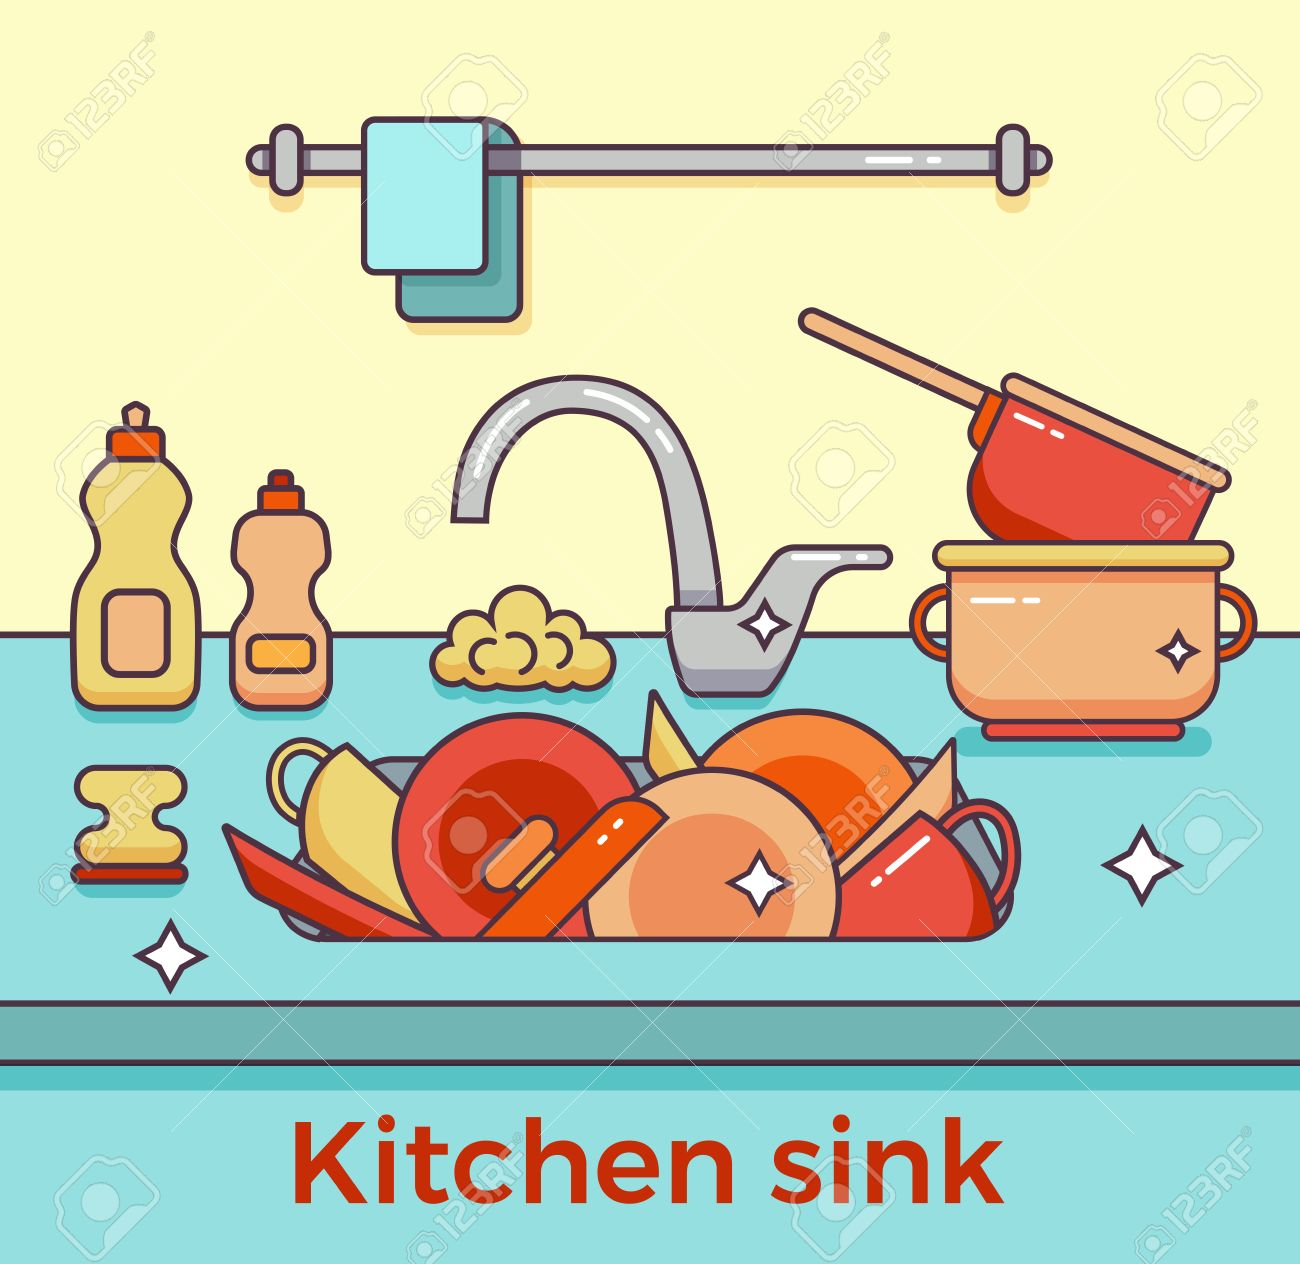 Kitchen Sink With Clean Dishes kitchen sink with kitchenware, dishes, utensil, towel, wash sponge